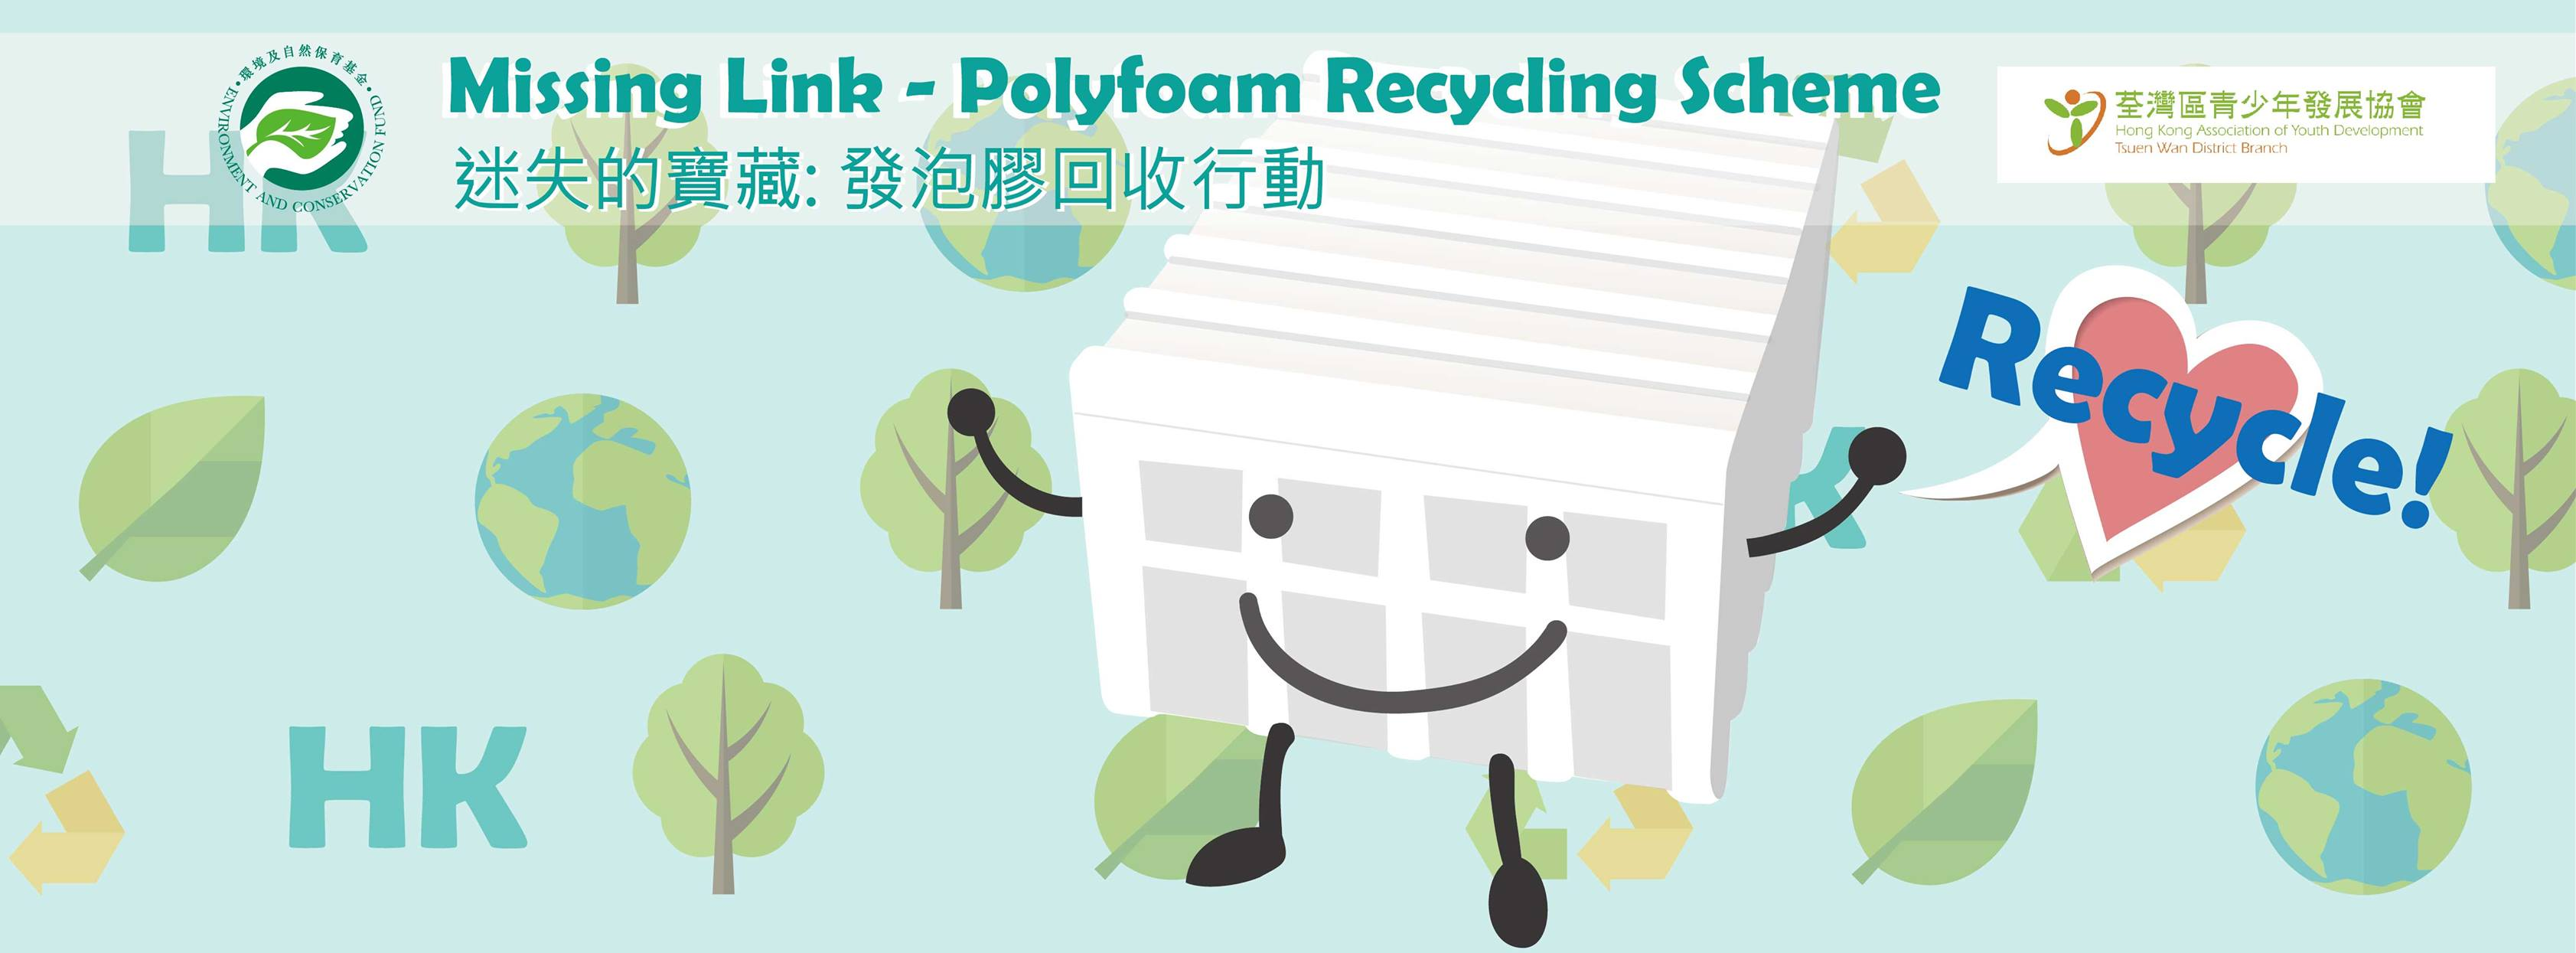 迷失的寶藏: 發泡膠回收行動 Missing Link- Polyfoam Recycling Scheme